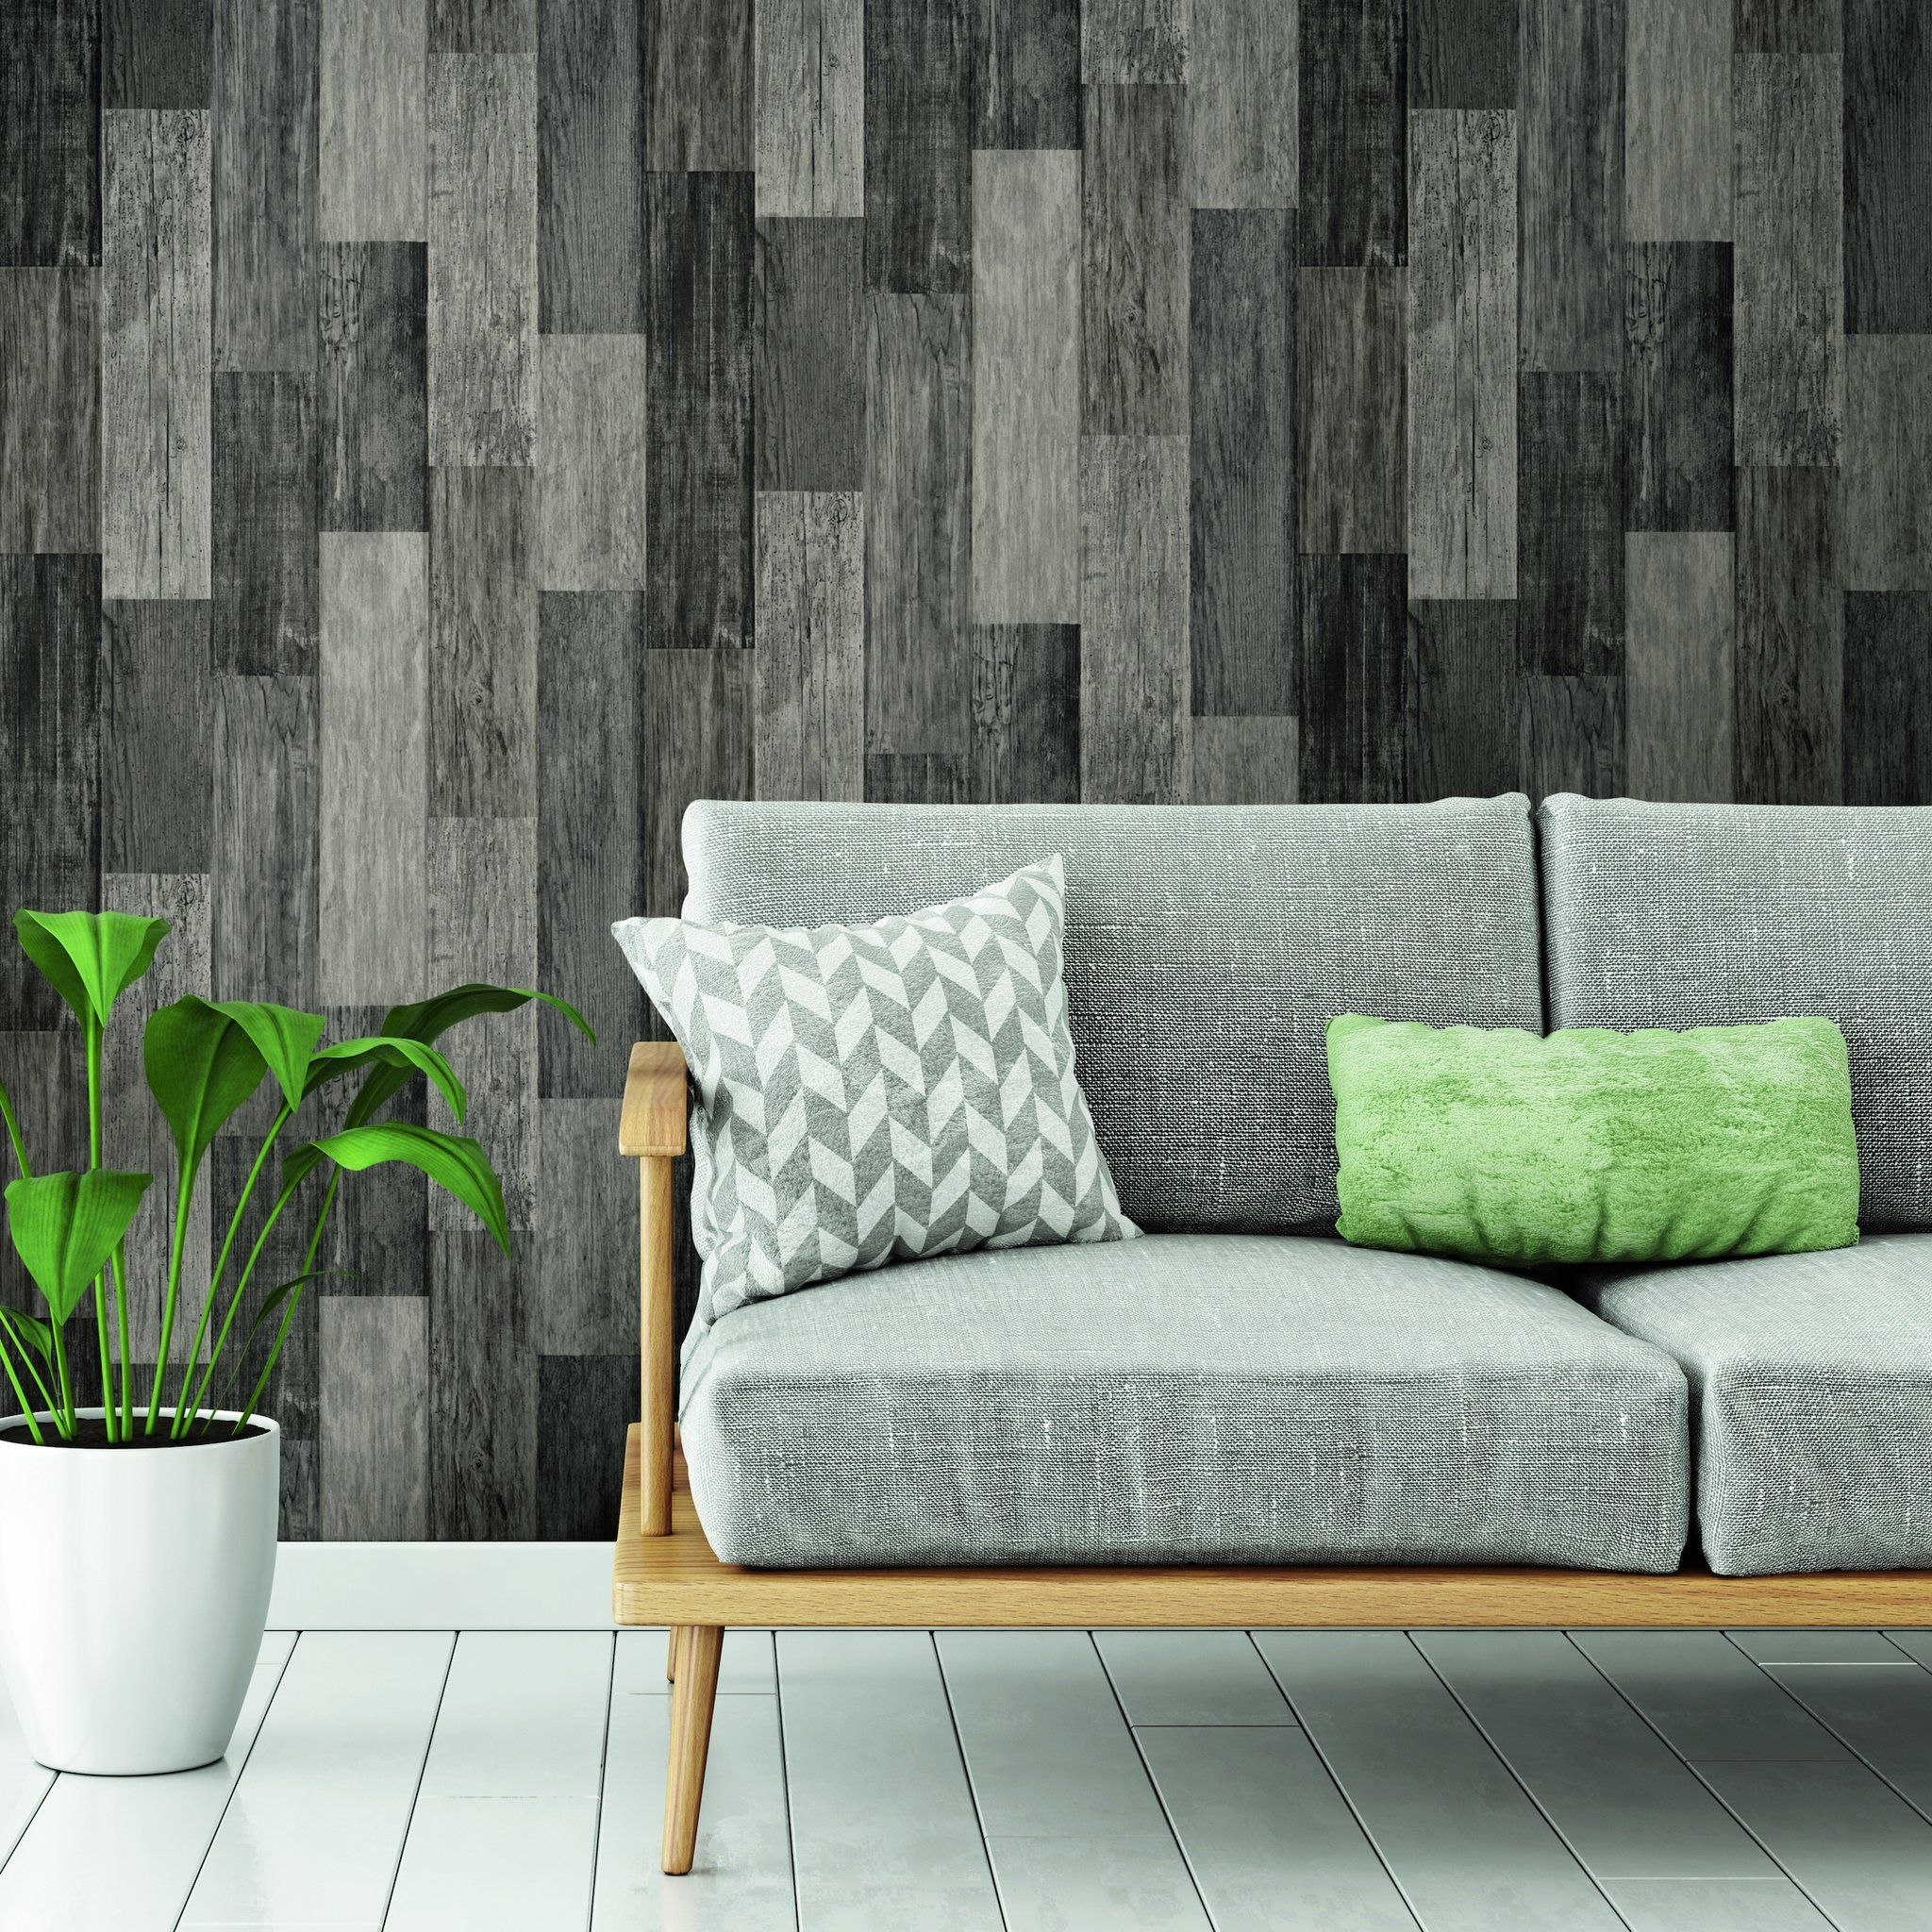 Weathered Wood Plank Black Peel Stick Wallpaper Wood Plank Wallpaper Cheap Apartment Decorating Weathered Wood